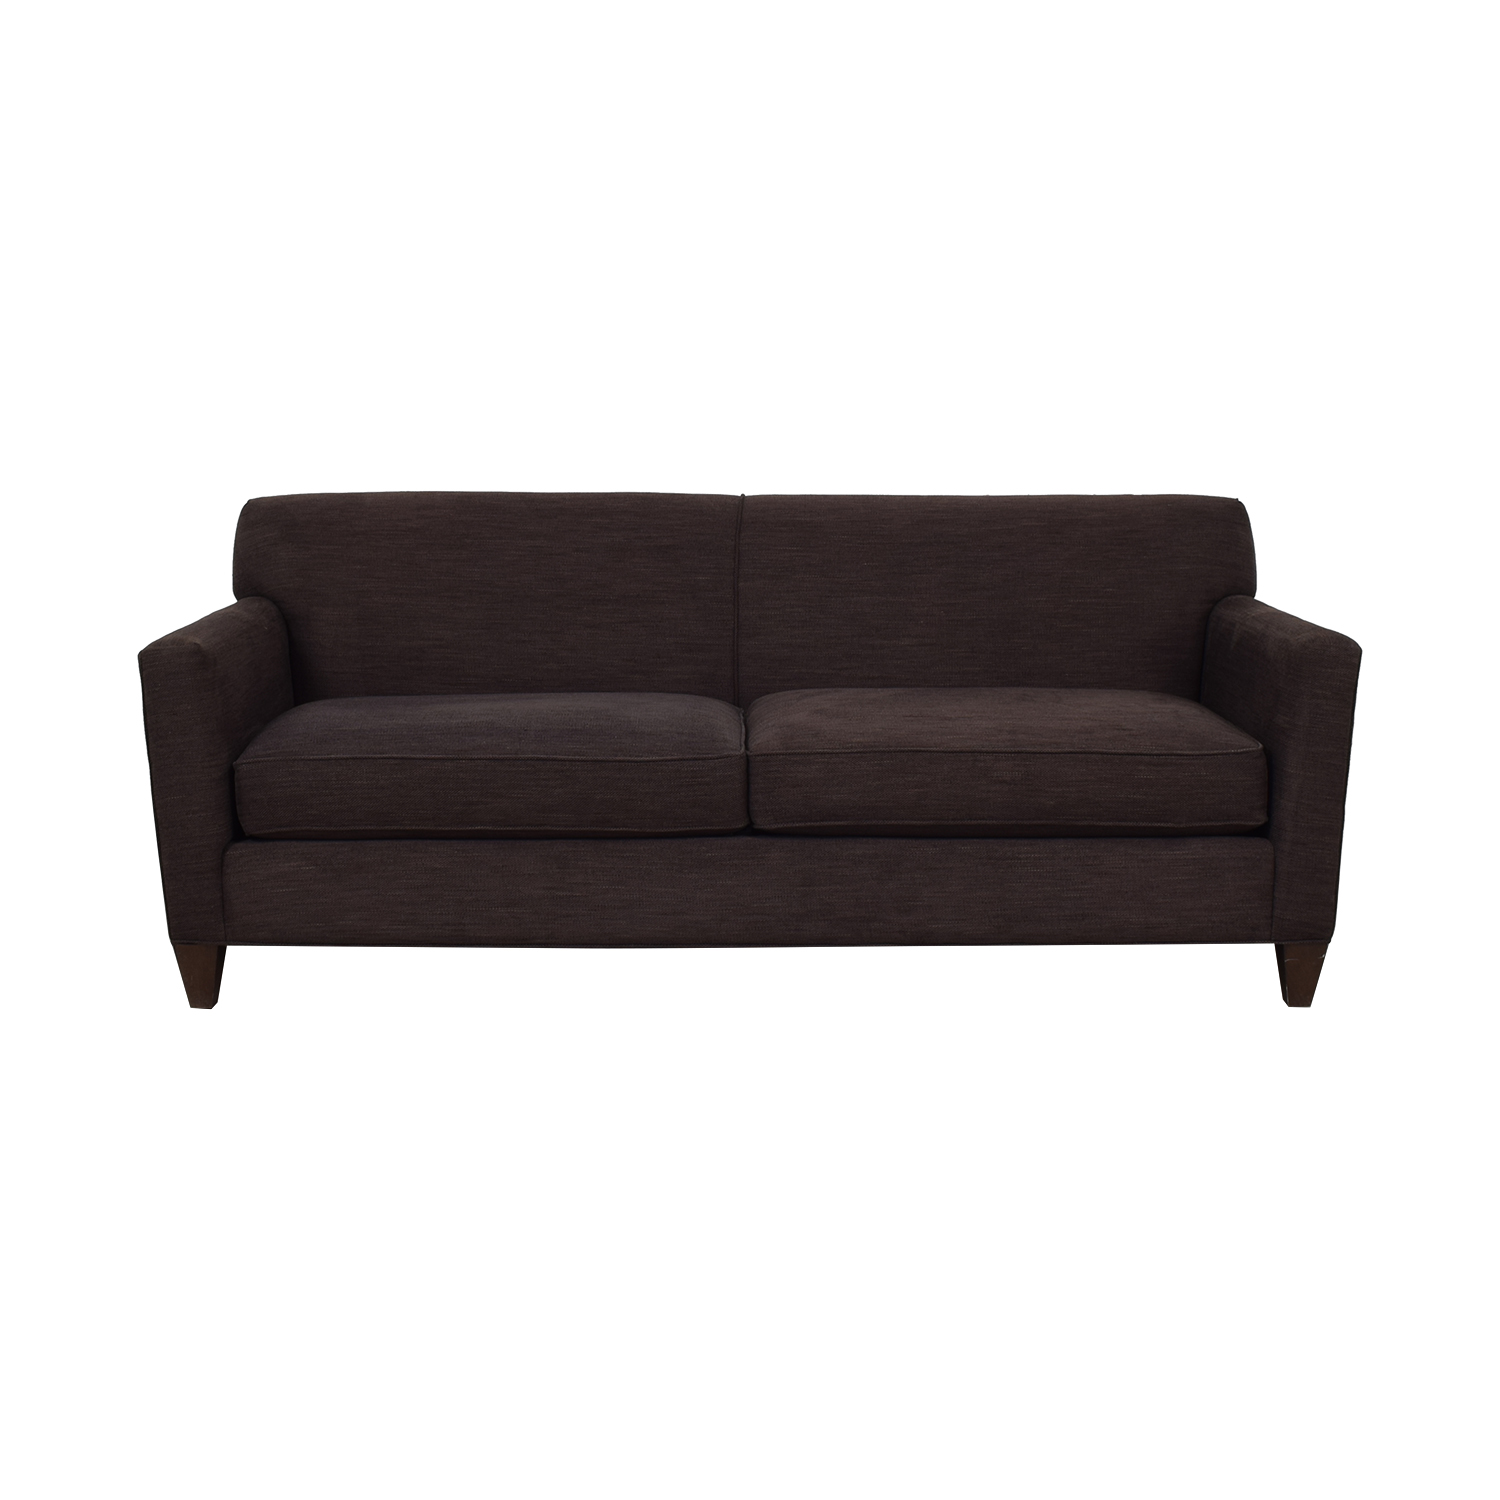 Crate & Barrel Crate & Barrel Hennessy Brown Two-Cushion Sofa nj